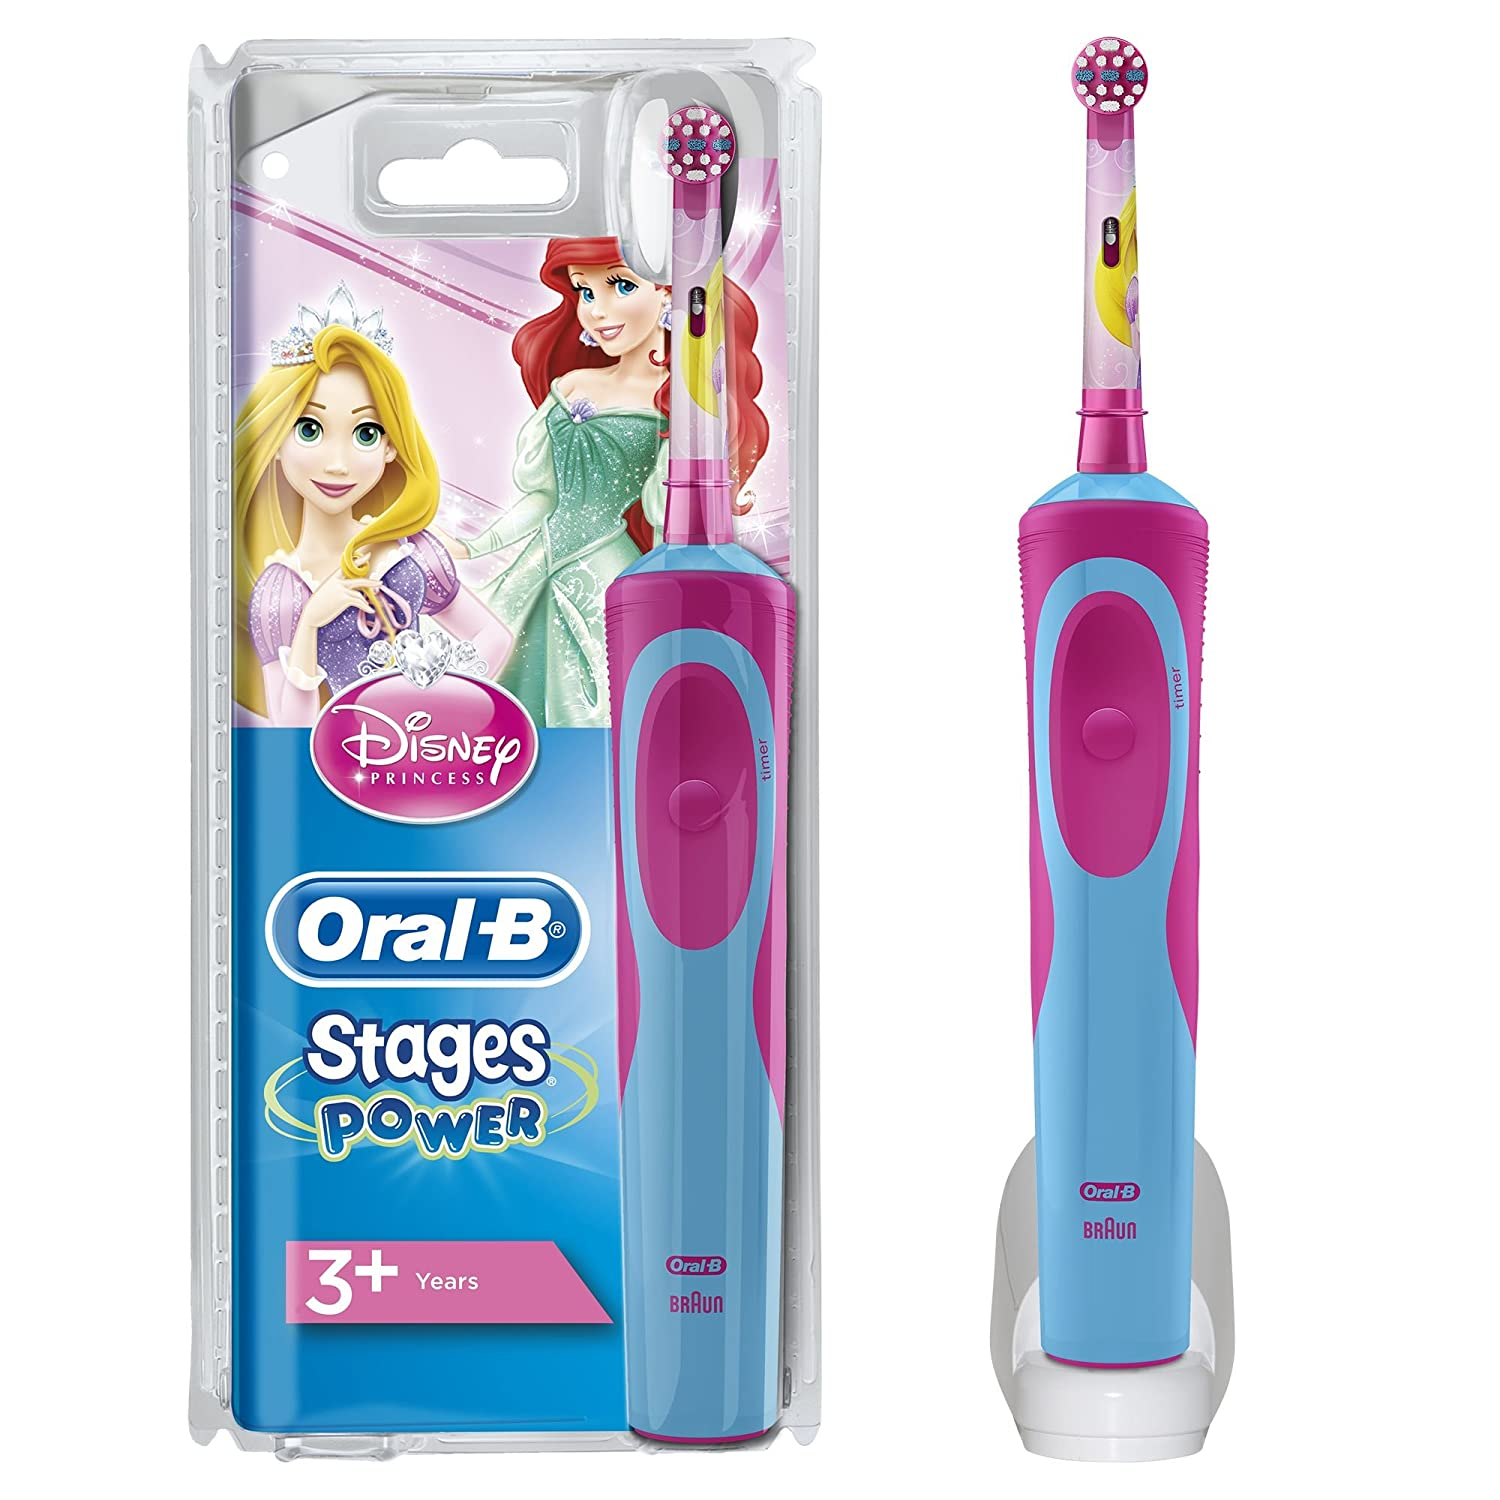 Oral-B Vitality Toothbrush Stages Power Electric For Kids Princess PROCTER & GAMBLE SRL 4210201128526